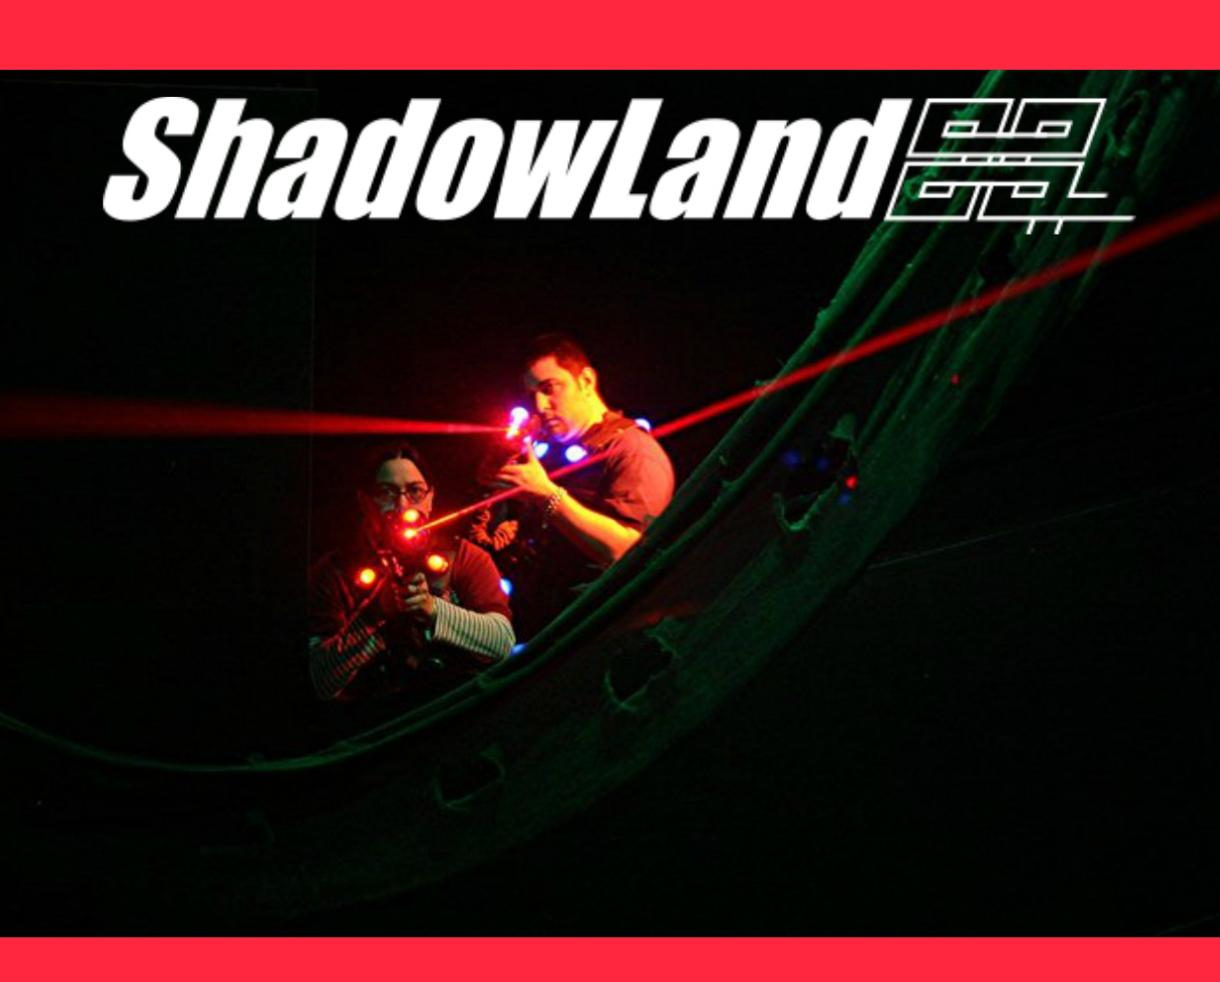 $11 for TWO Laser Tag Adventures at ShadowLand OR $149 for Laser Tag Birthday Party / Business Team Building Event - Valid at all FIVE Maryland and Virginia Locations! (Up to 32% Off)